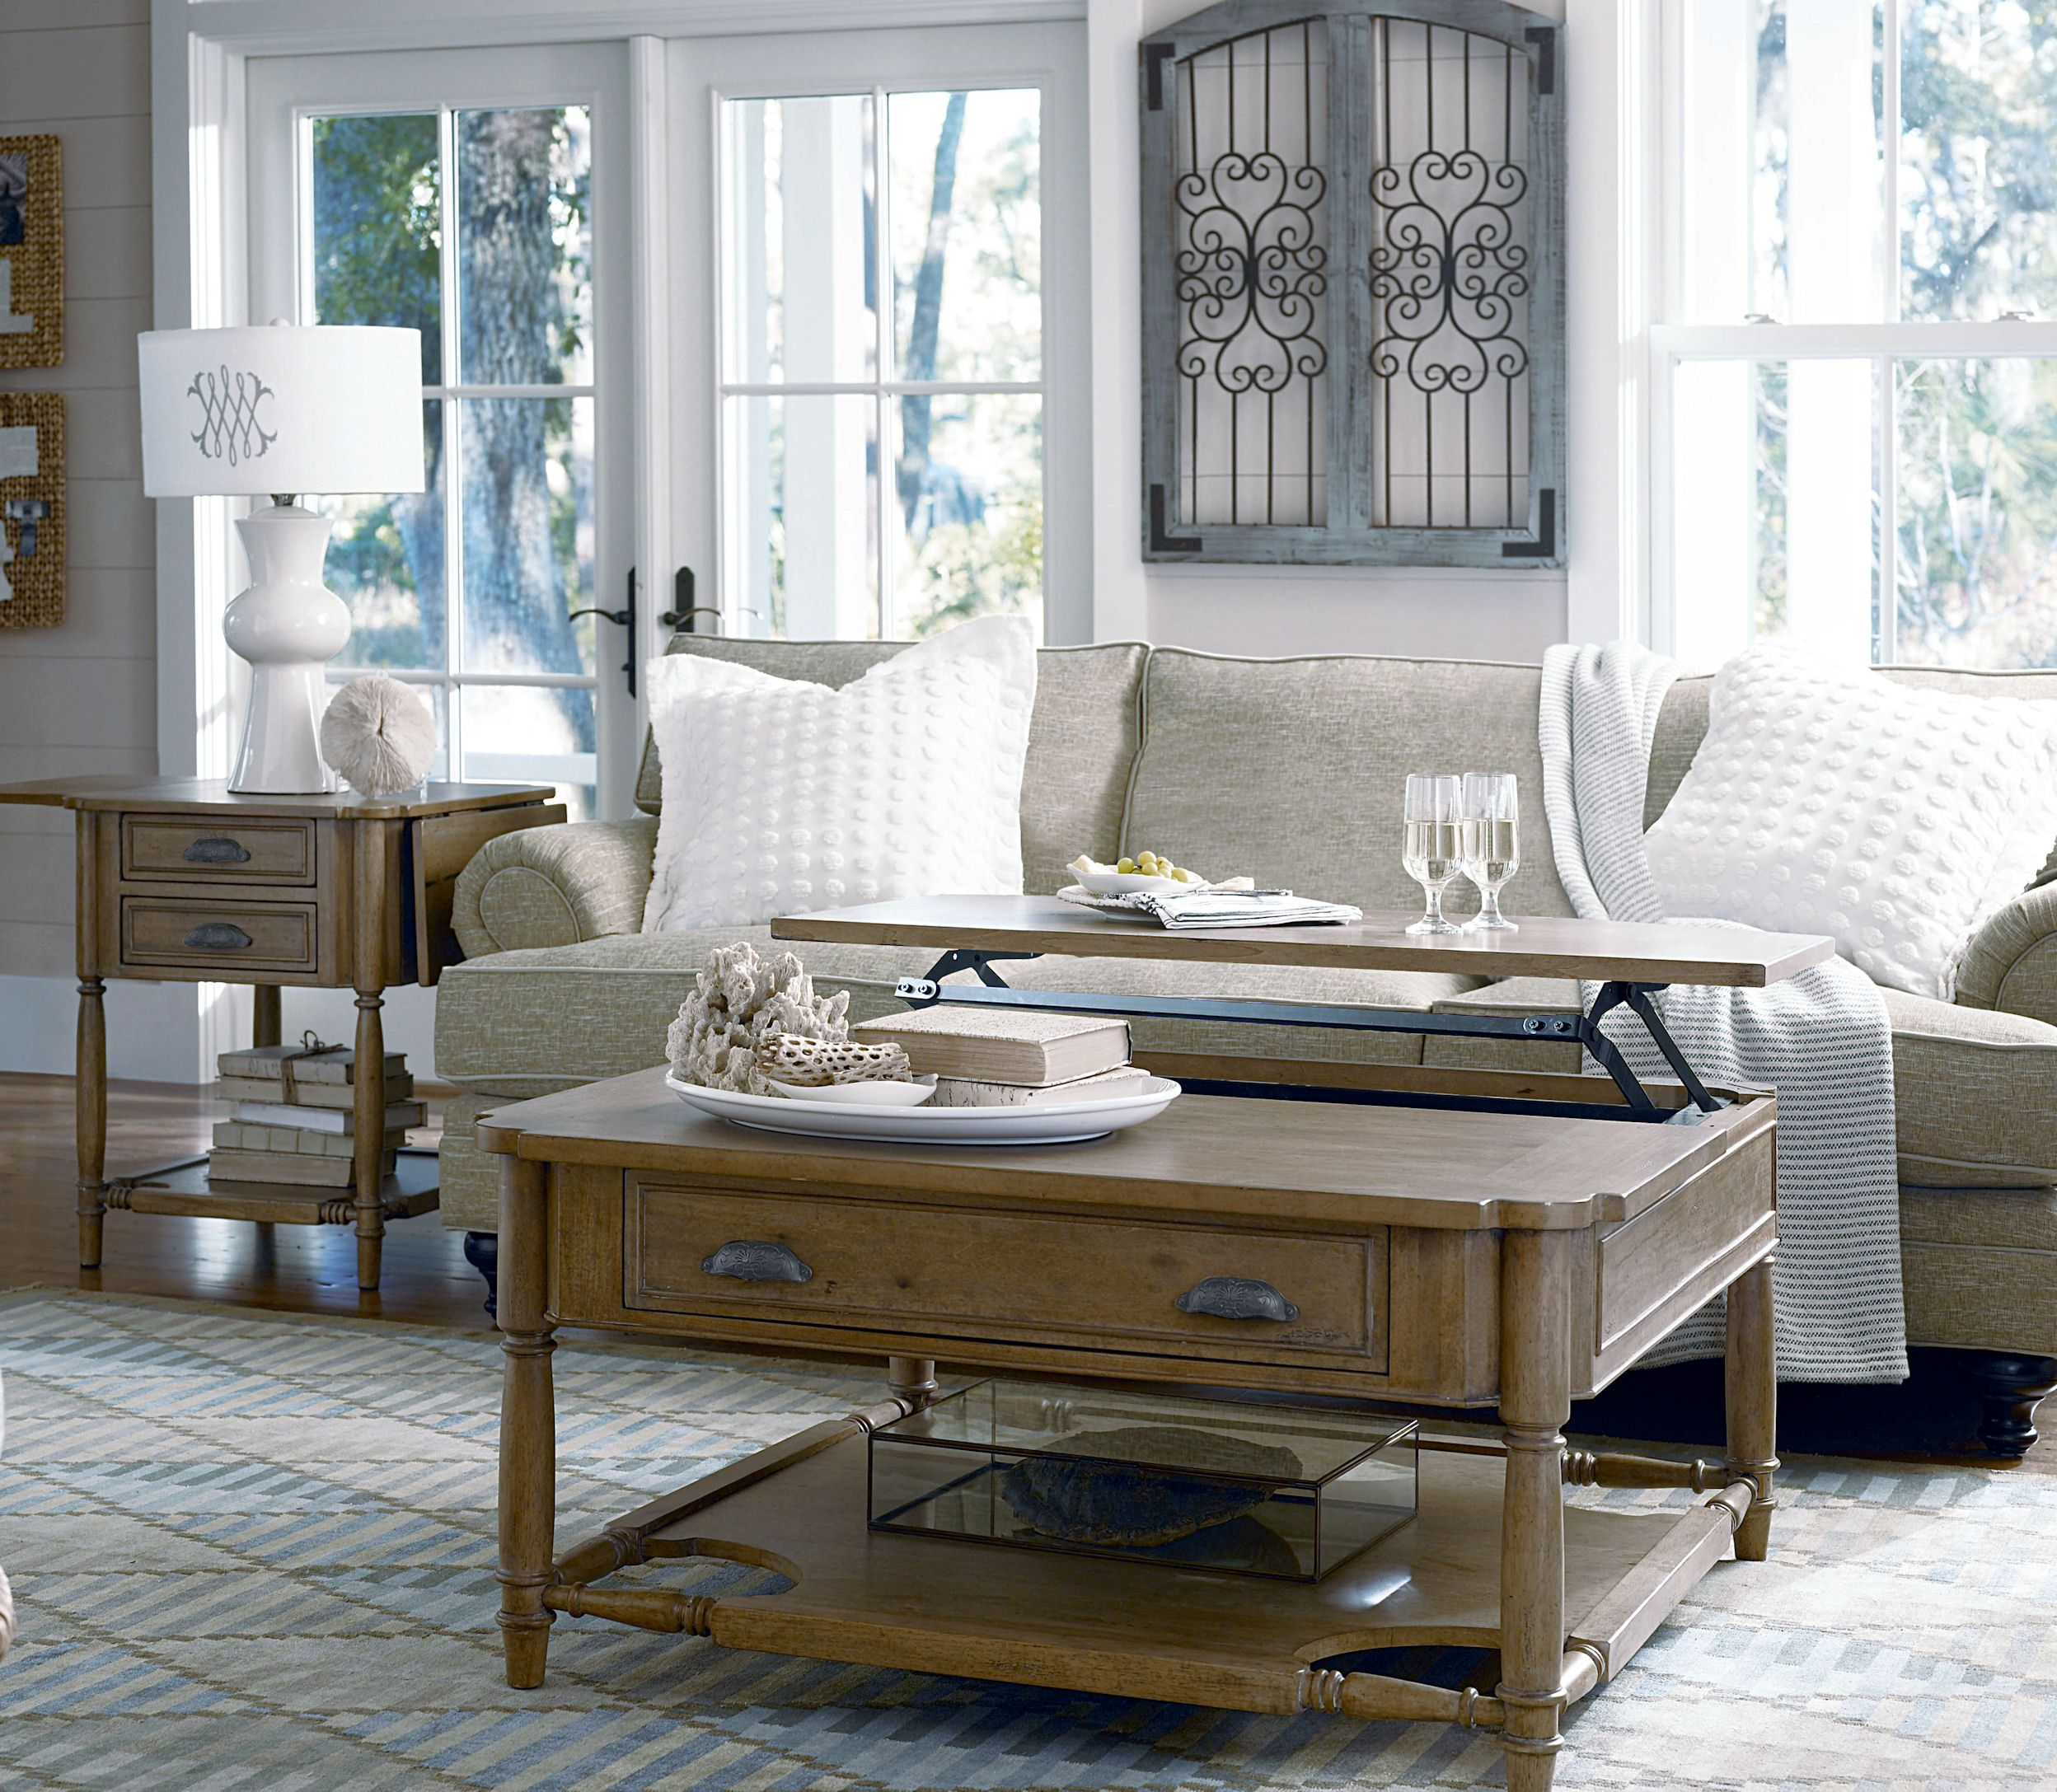 See More From Paula Deen At Howell Furniture! #PaulaDeen #DownHome # Furniture #